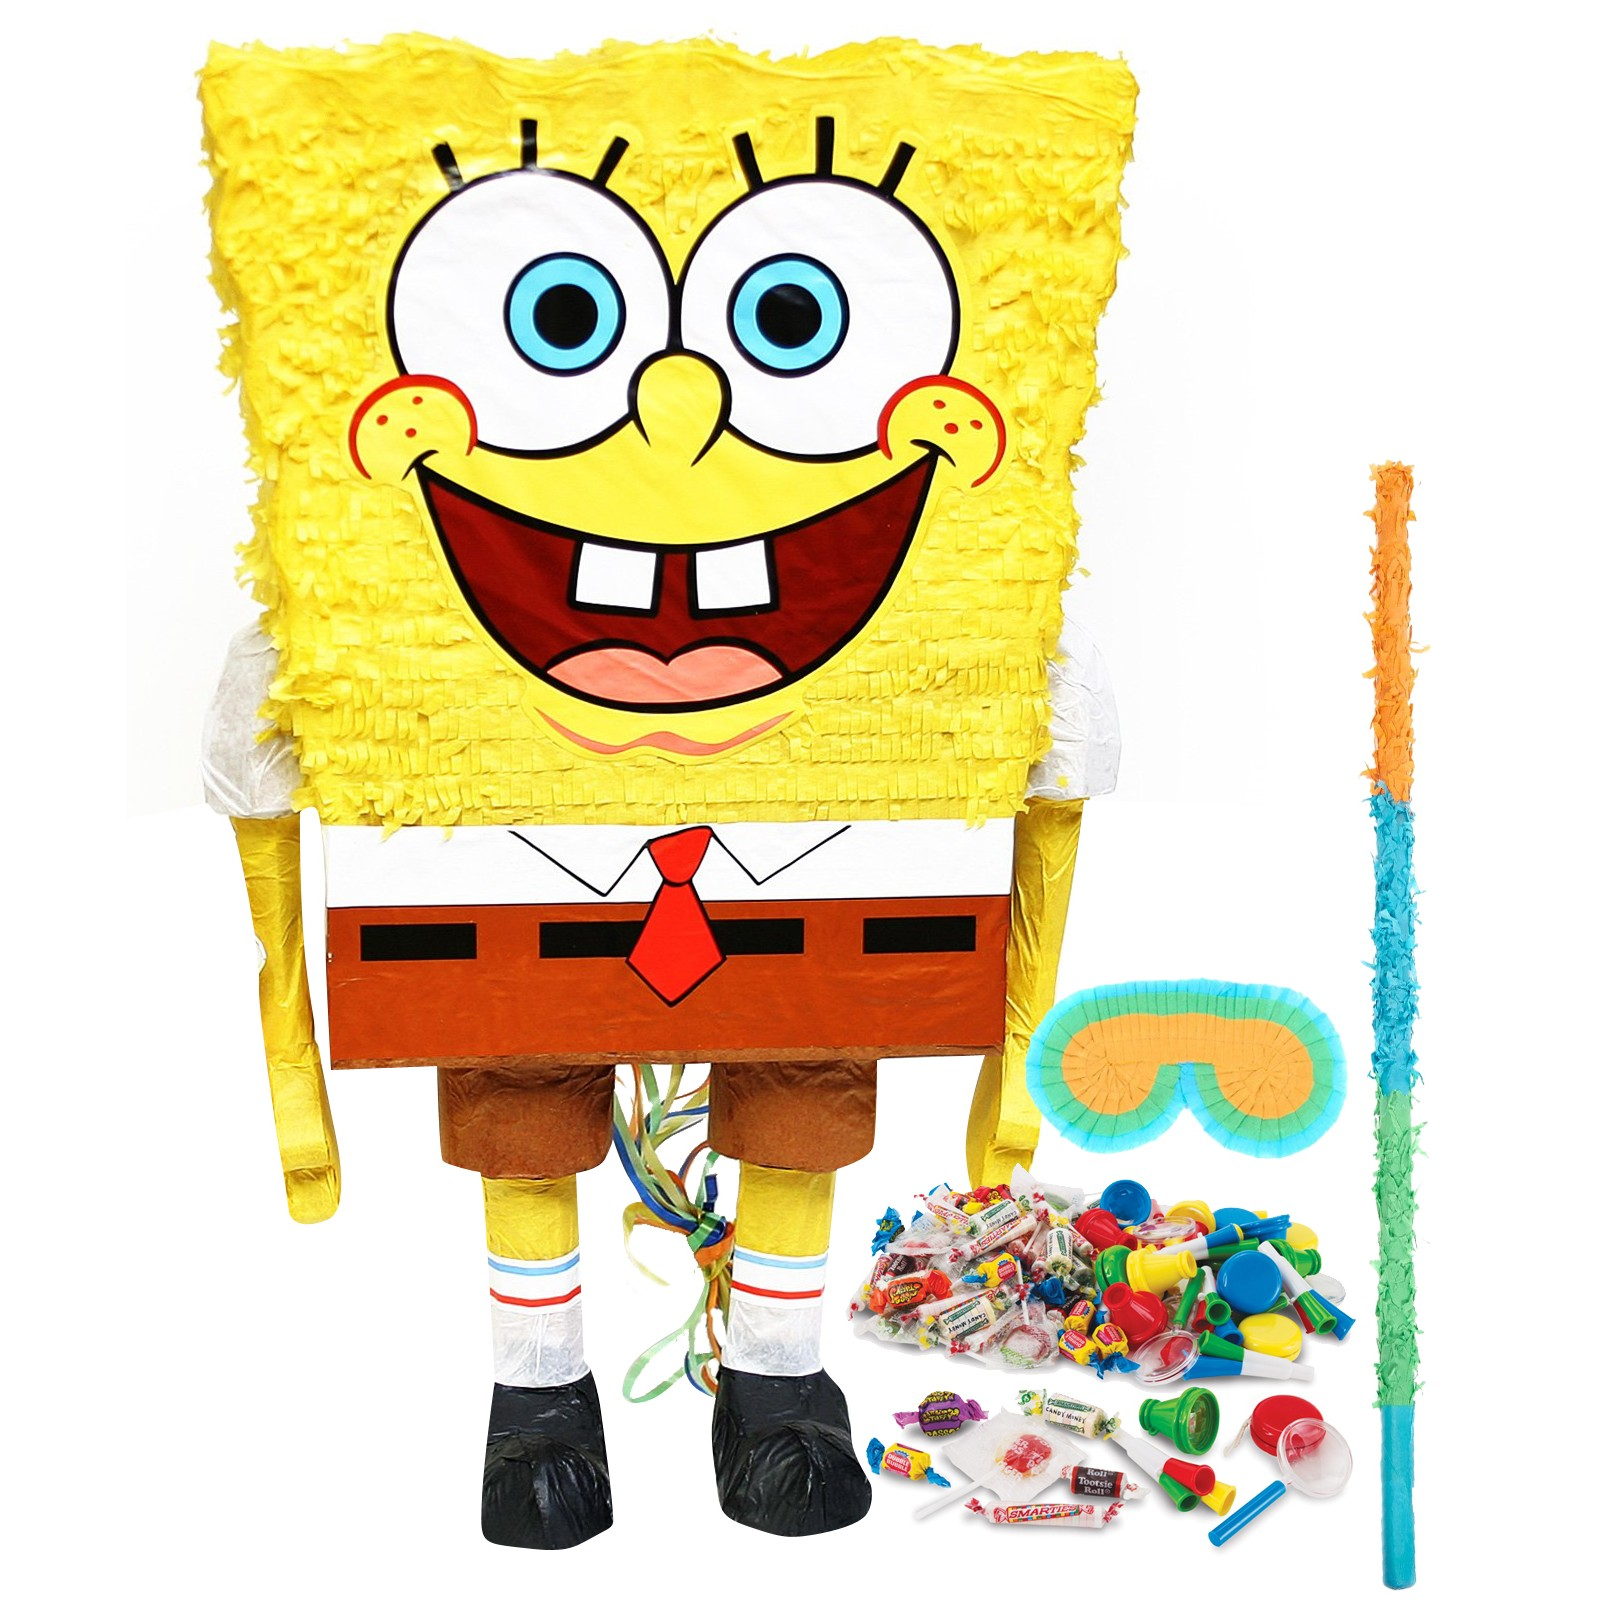 Spongebob Squarepants Pinata Kit by Generic